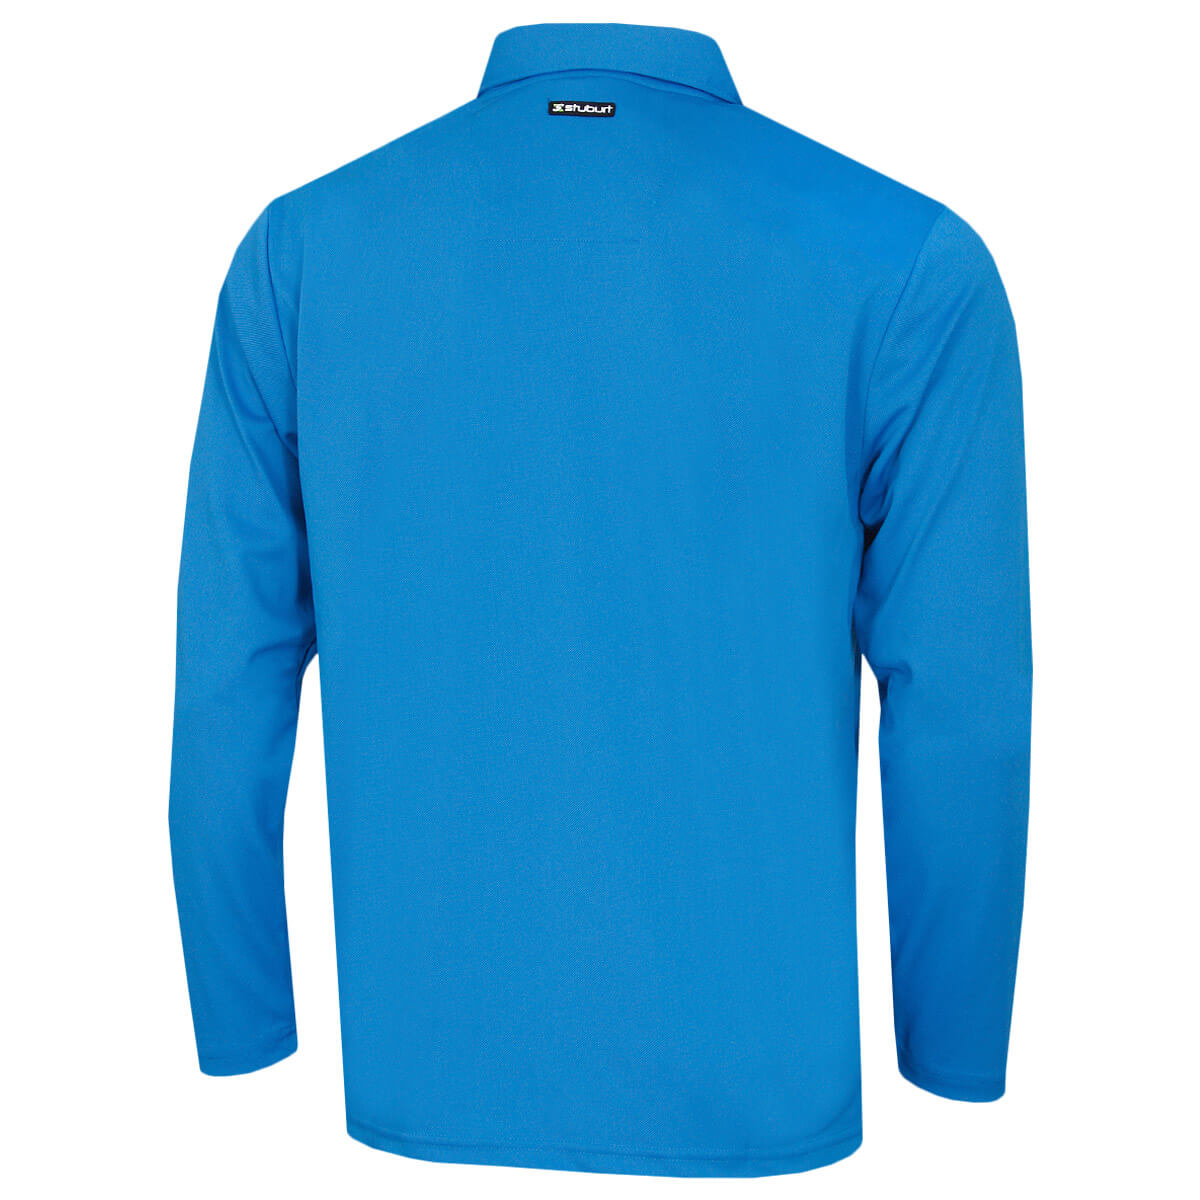 Stuburt-Mens-Urban-Long-Sleeve-Wicking-Breathable-Golf-Polo-Shirt-33-OFF-RRP thumbnail 11